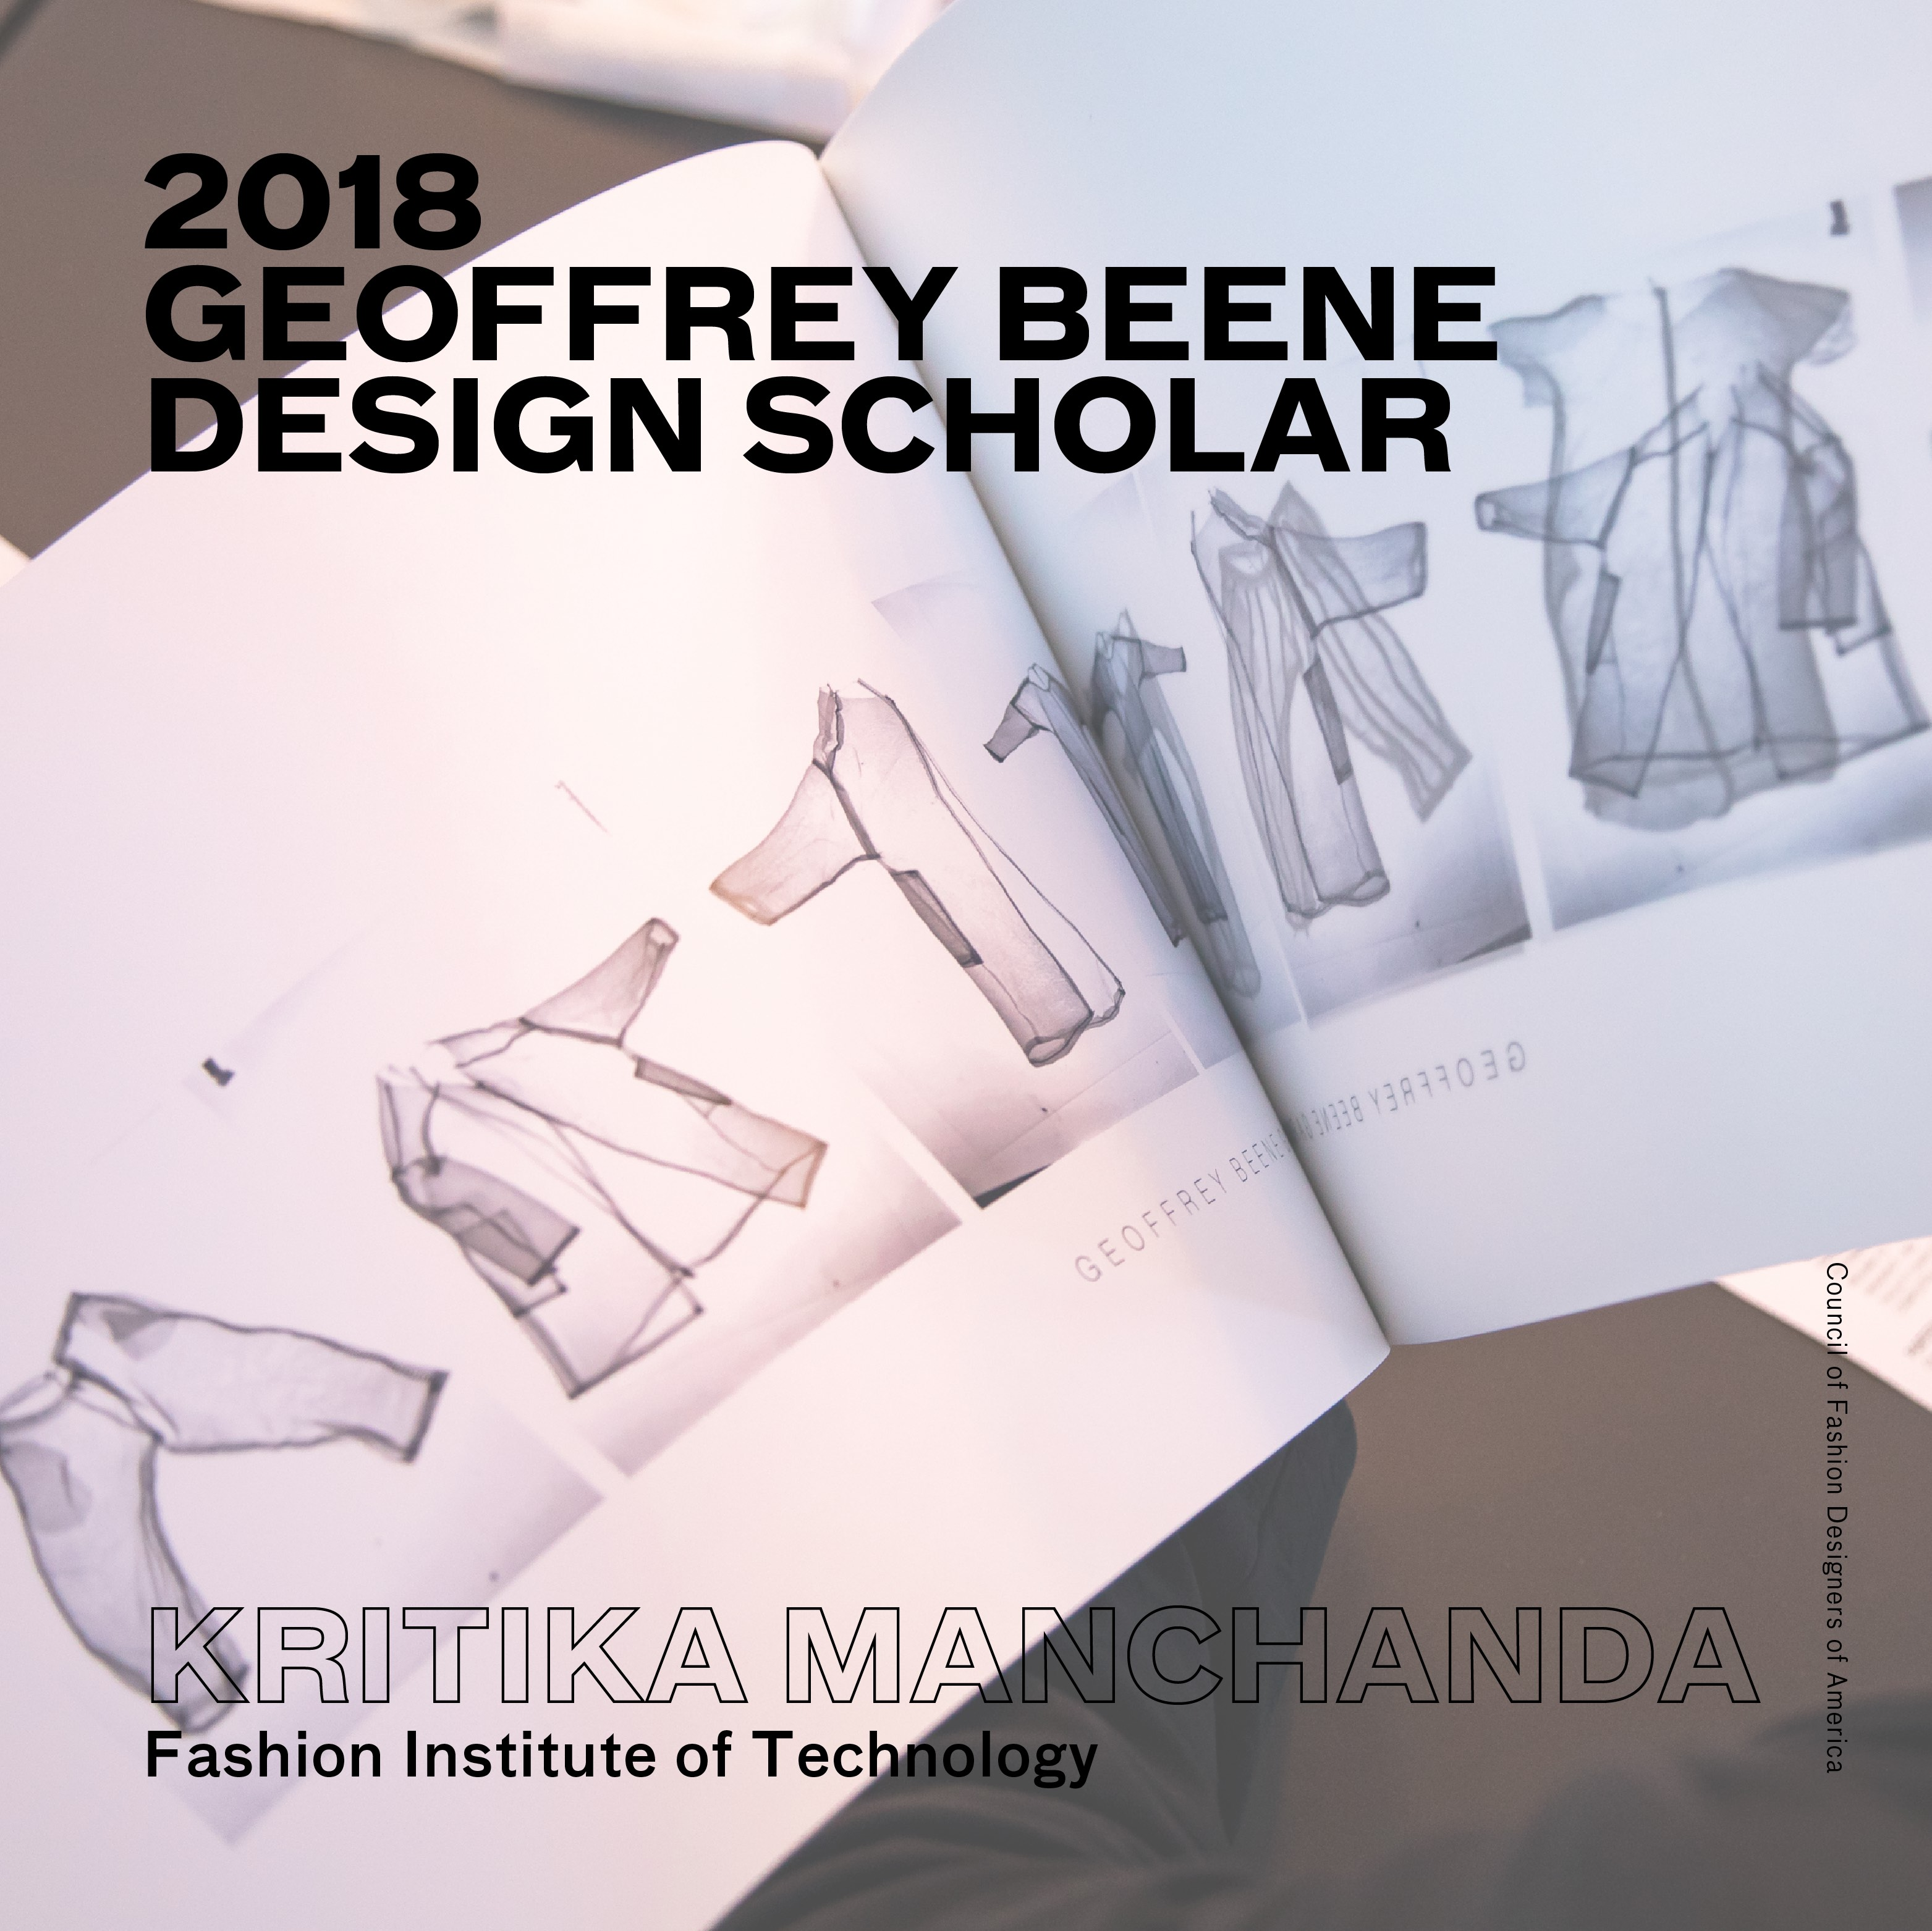 2018 Geoffrey Beene Design Scholarship Award Kritika Manchanada Fashion Institute of Technology